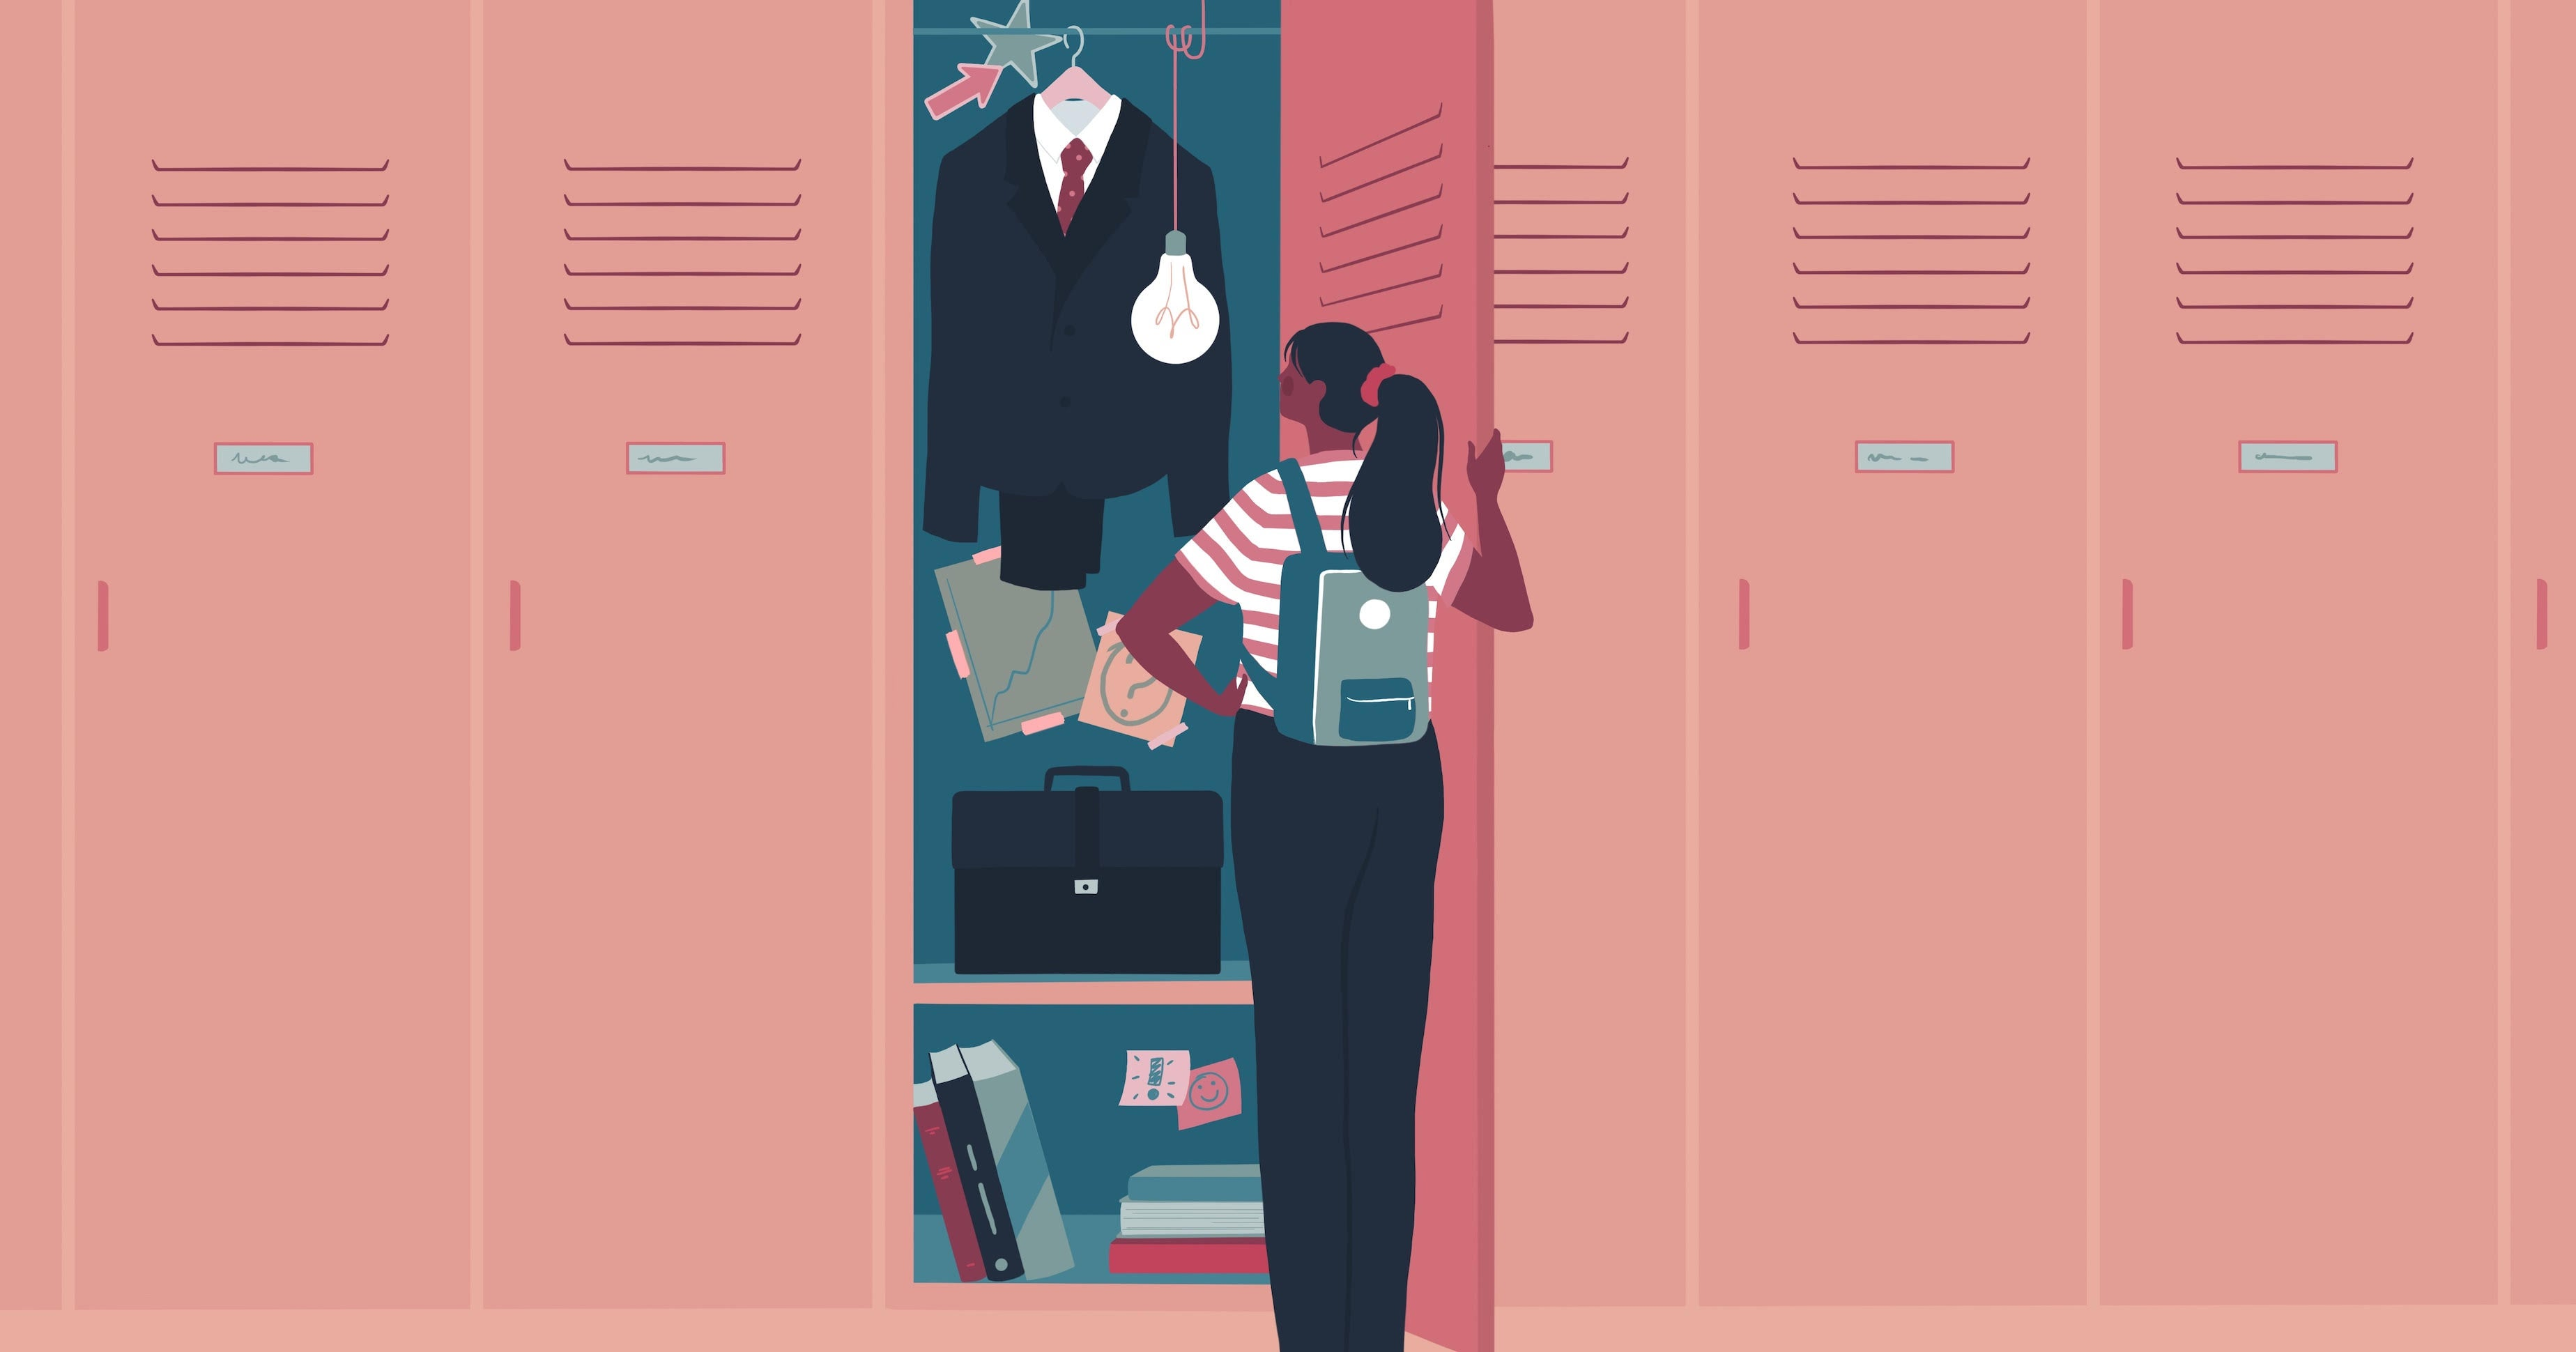 Illustration of a teen girl looking in a locker that's filled with business attire